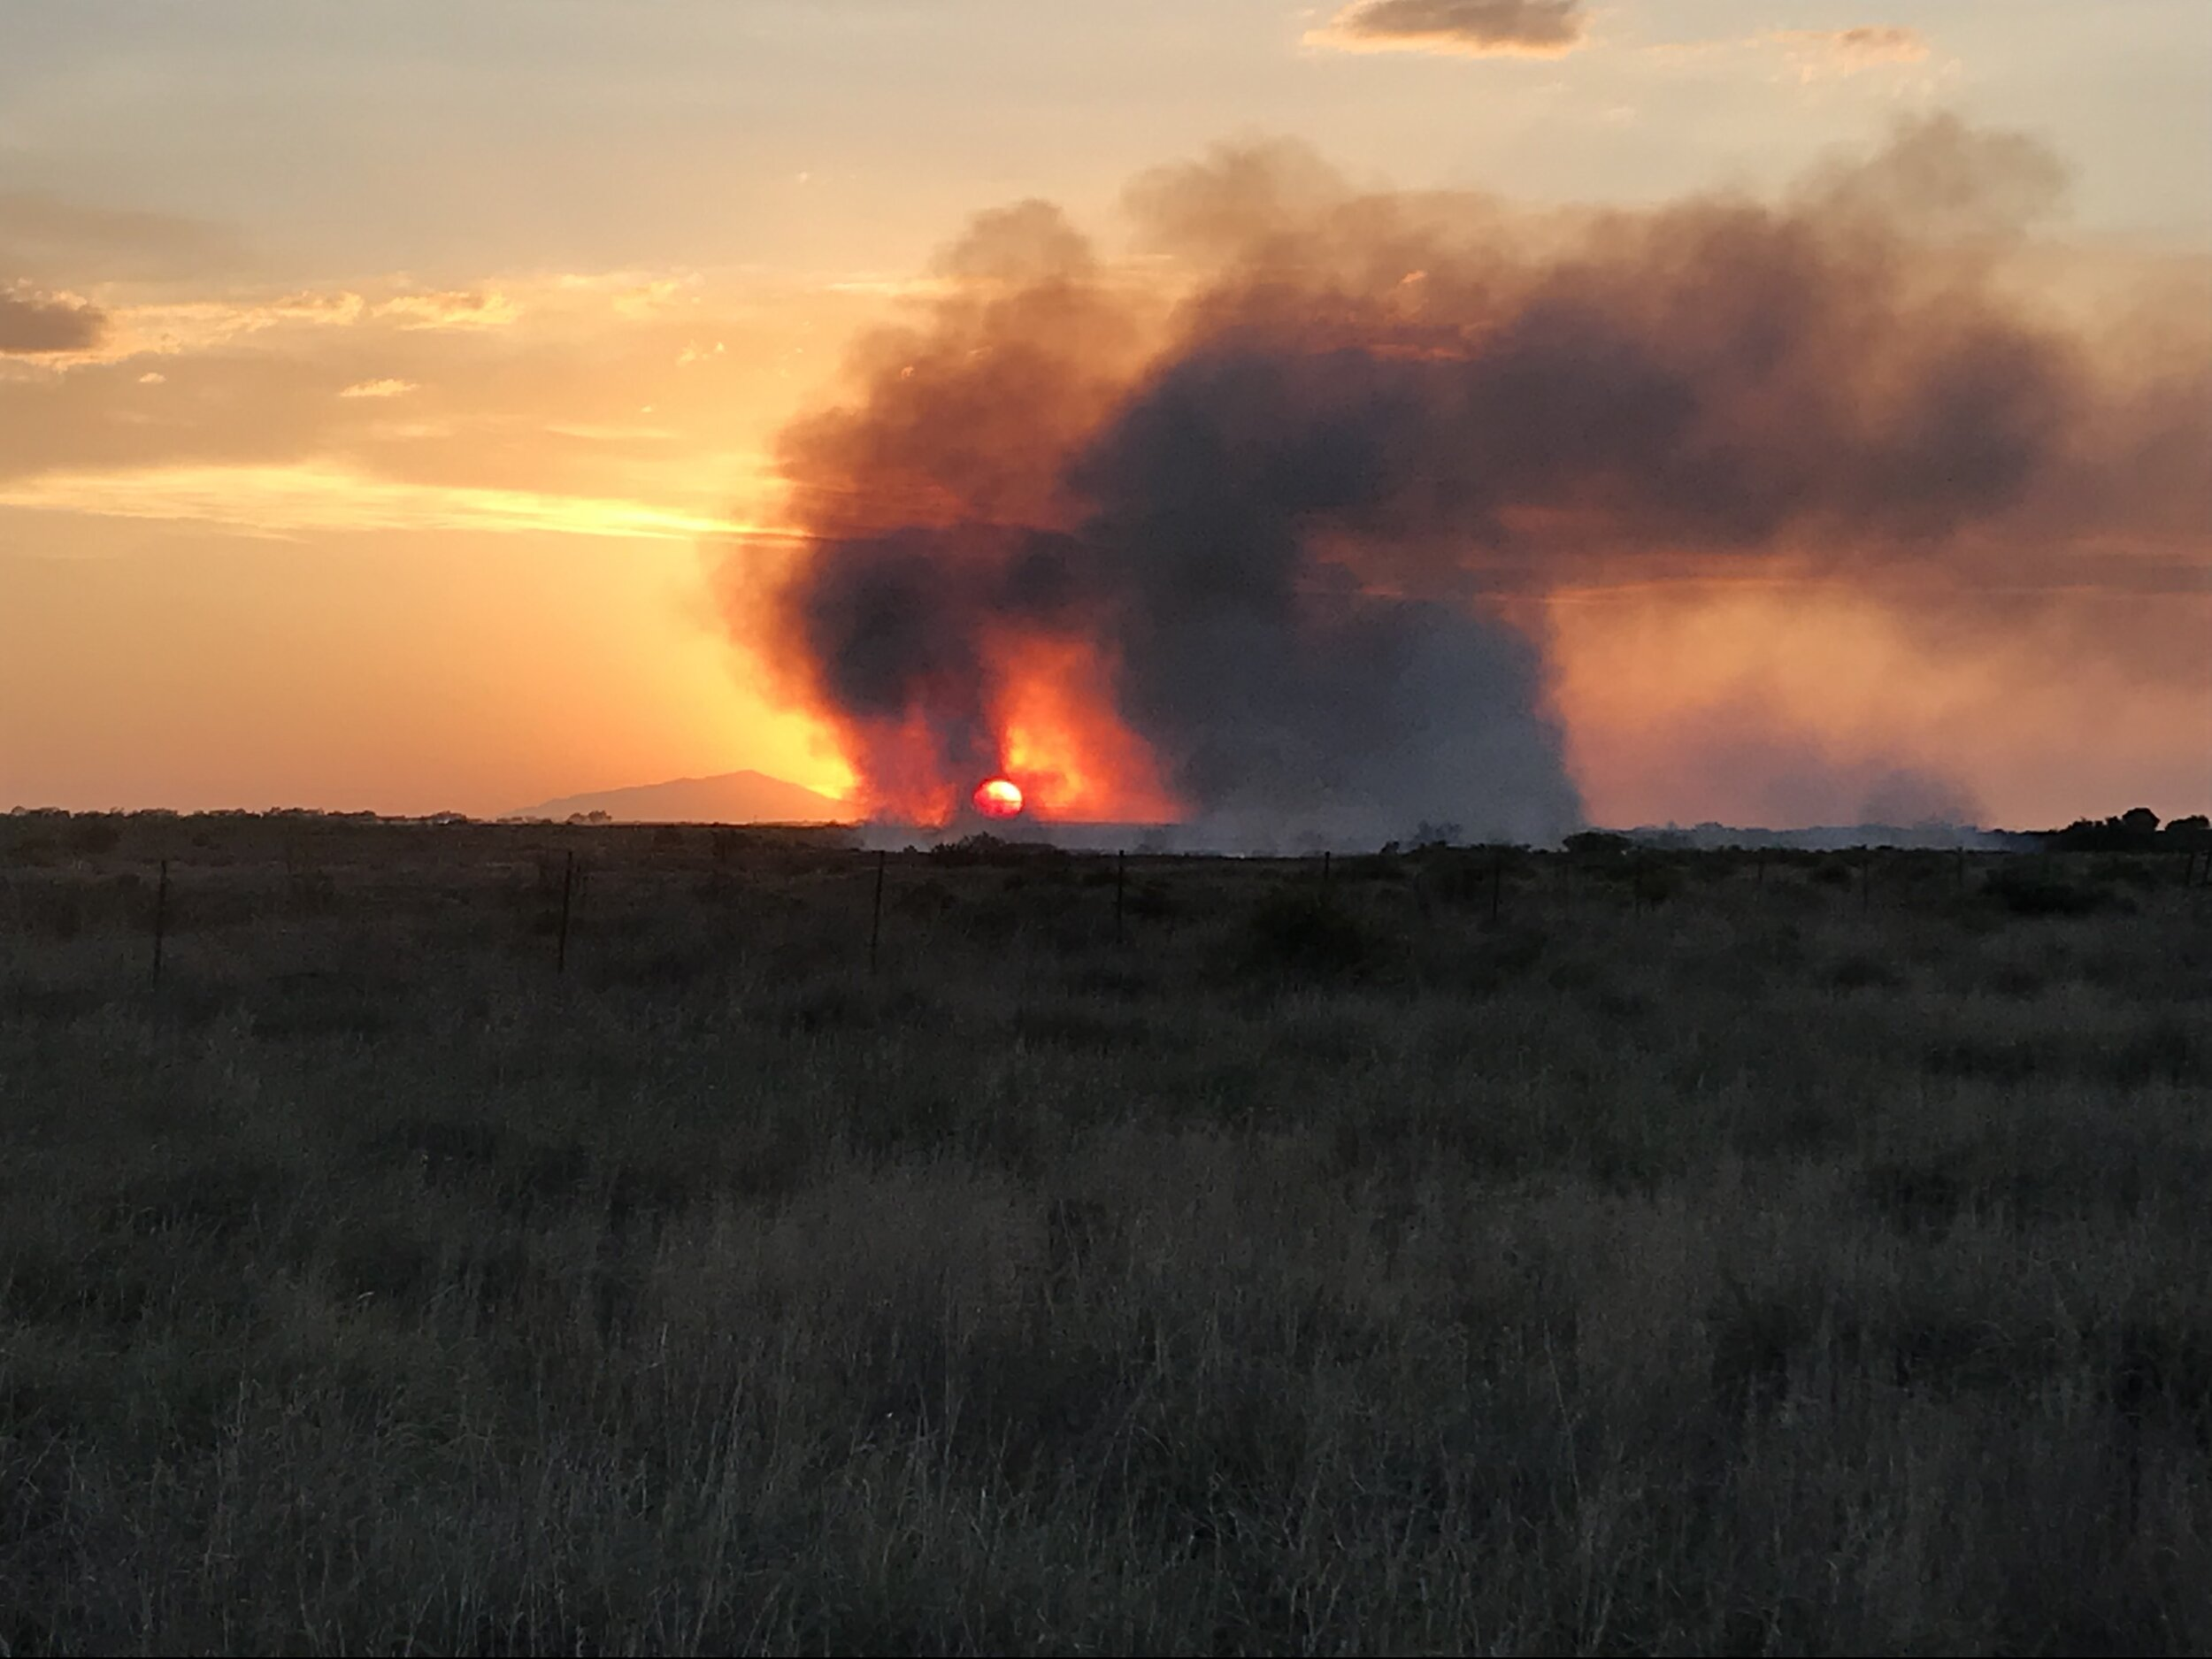 The Patterson Fire burns along the Pecos River near Roswell, New Mexico on May 16, 2019. New Mexico State Parks photo by Joe Desjardins.